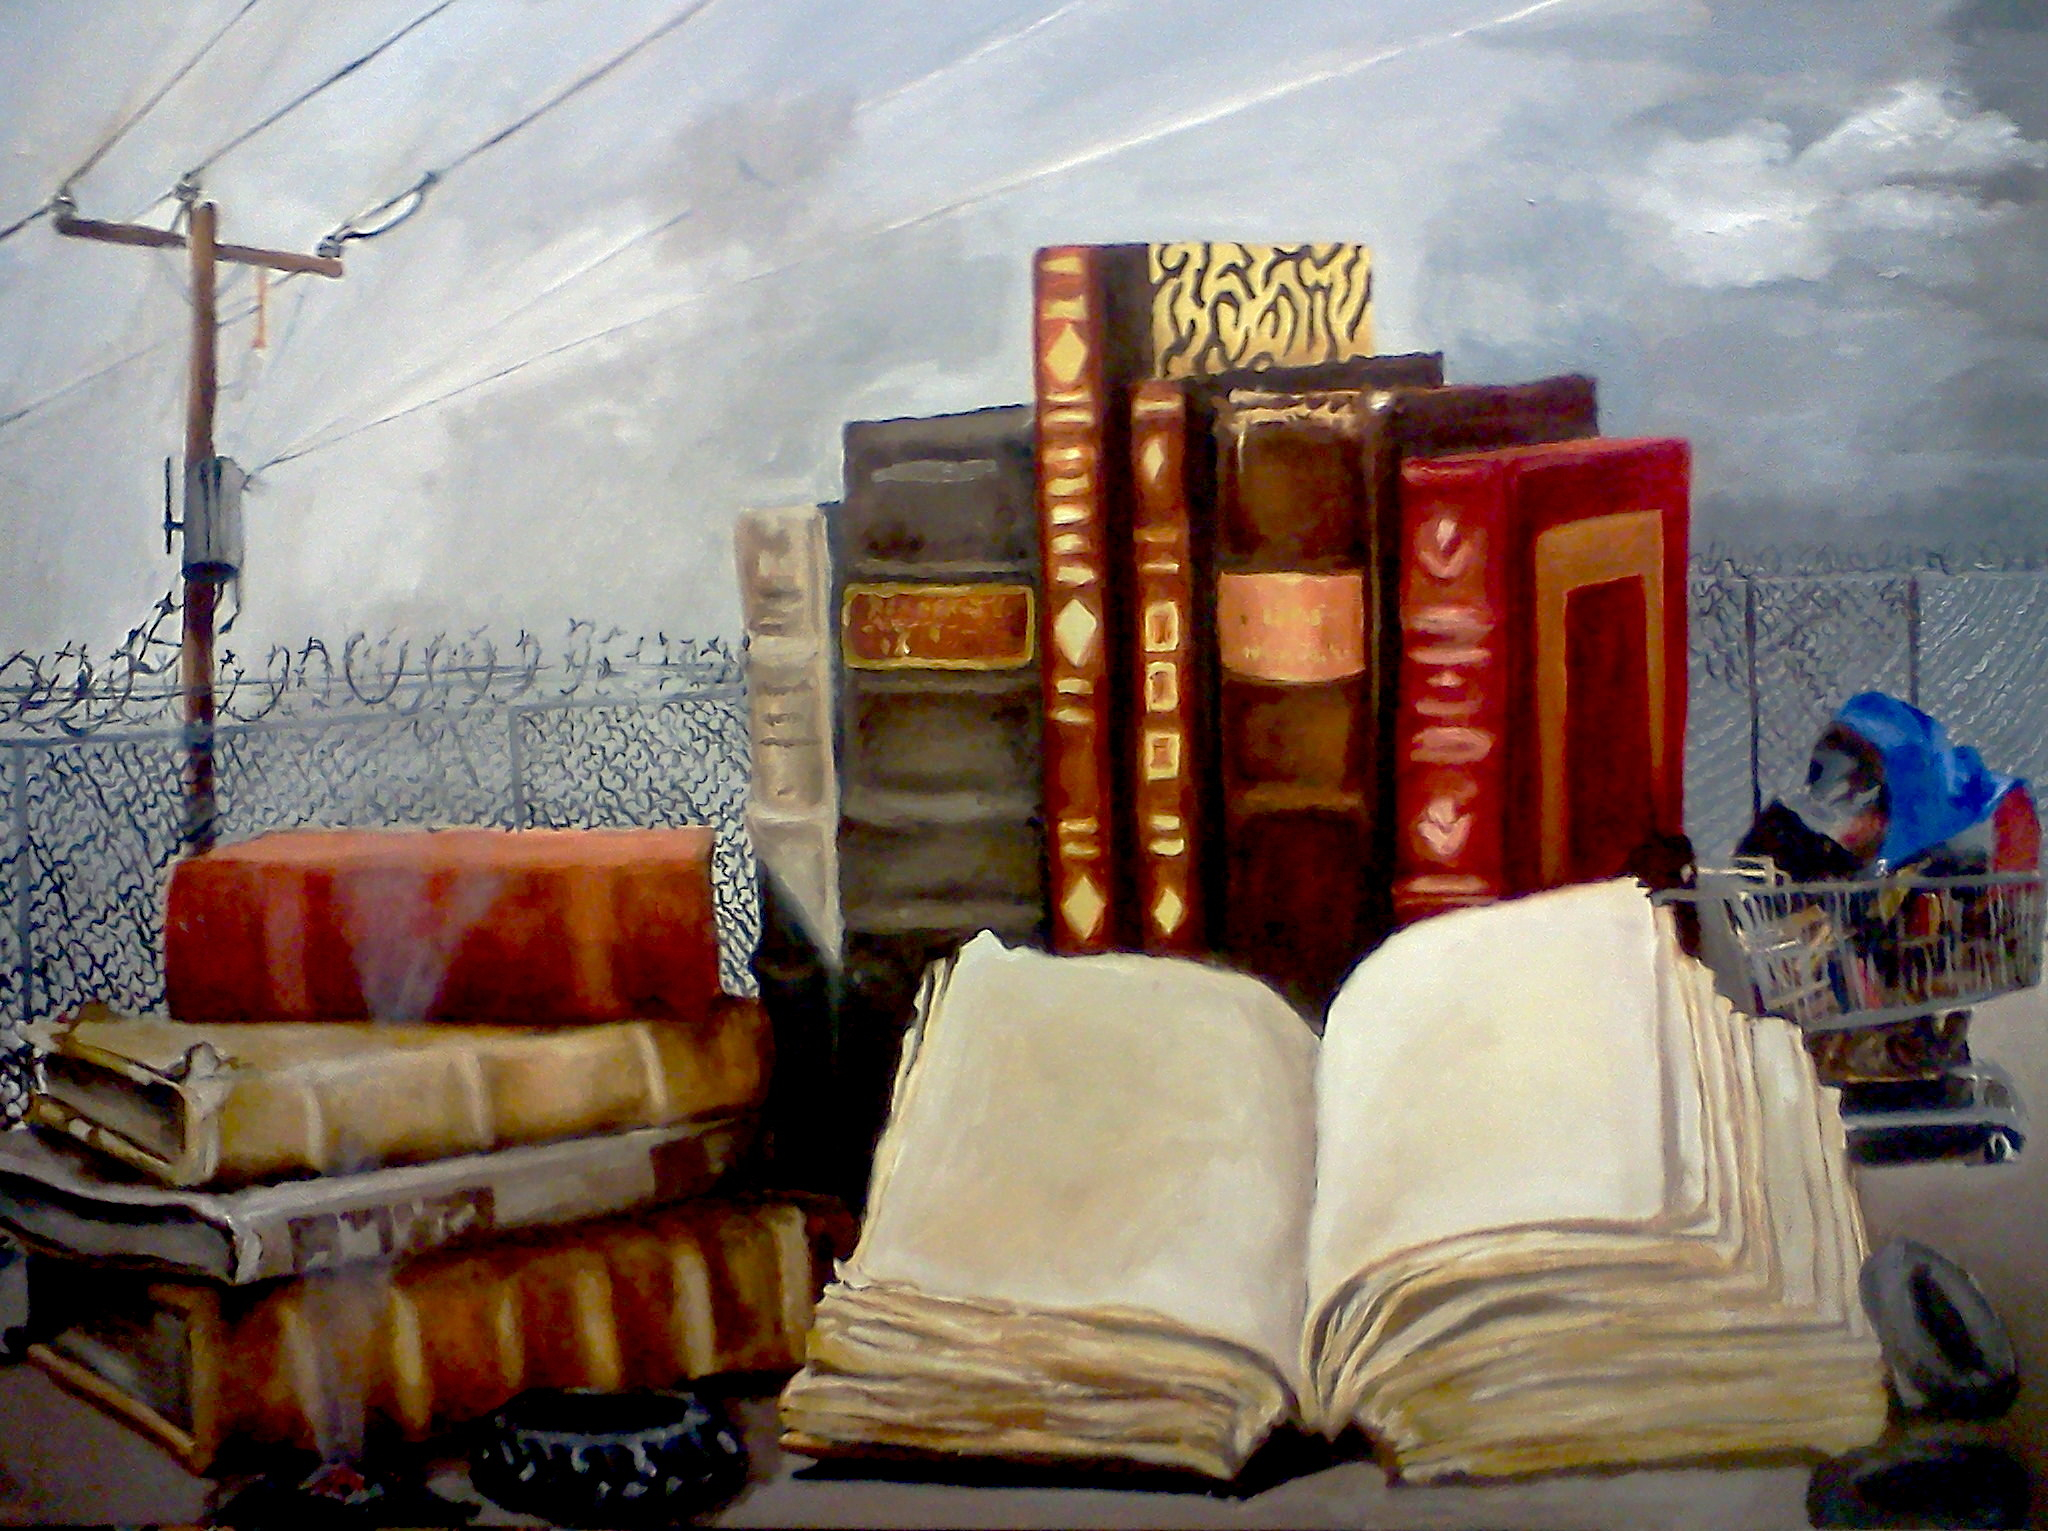 Old-books-junkyard.jpg